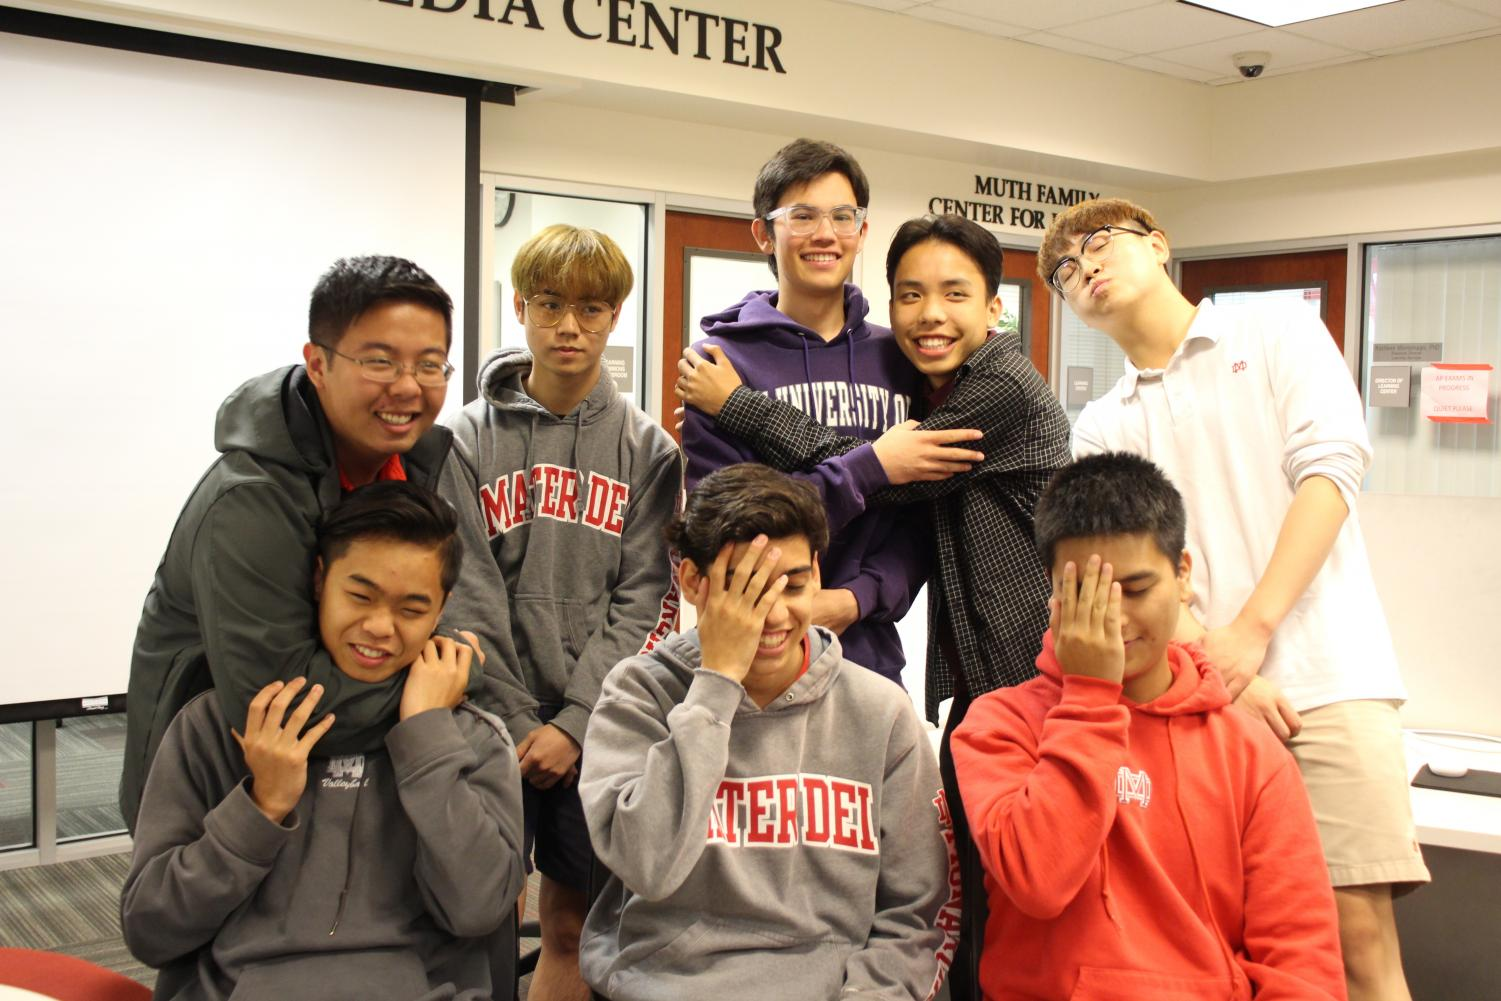 Wednesdays are for the Boys: From left to right, senior Tim Tian, junior Zipeng (Lester) Zhao, junior Nathan Cole, junior team captain Aiden Nguyen, senior Yunqi (Murphy) Chu, junior Travis Tran, junior Dylan Ebuhardt and junior Matthew Vu pose for a photo.